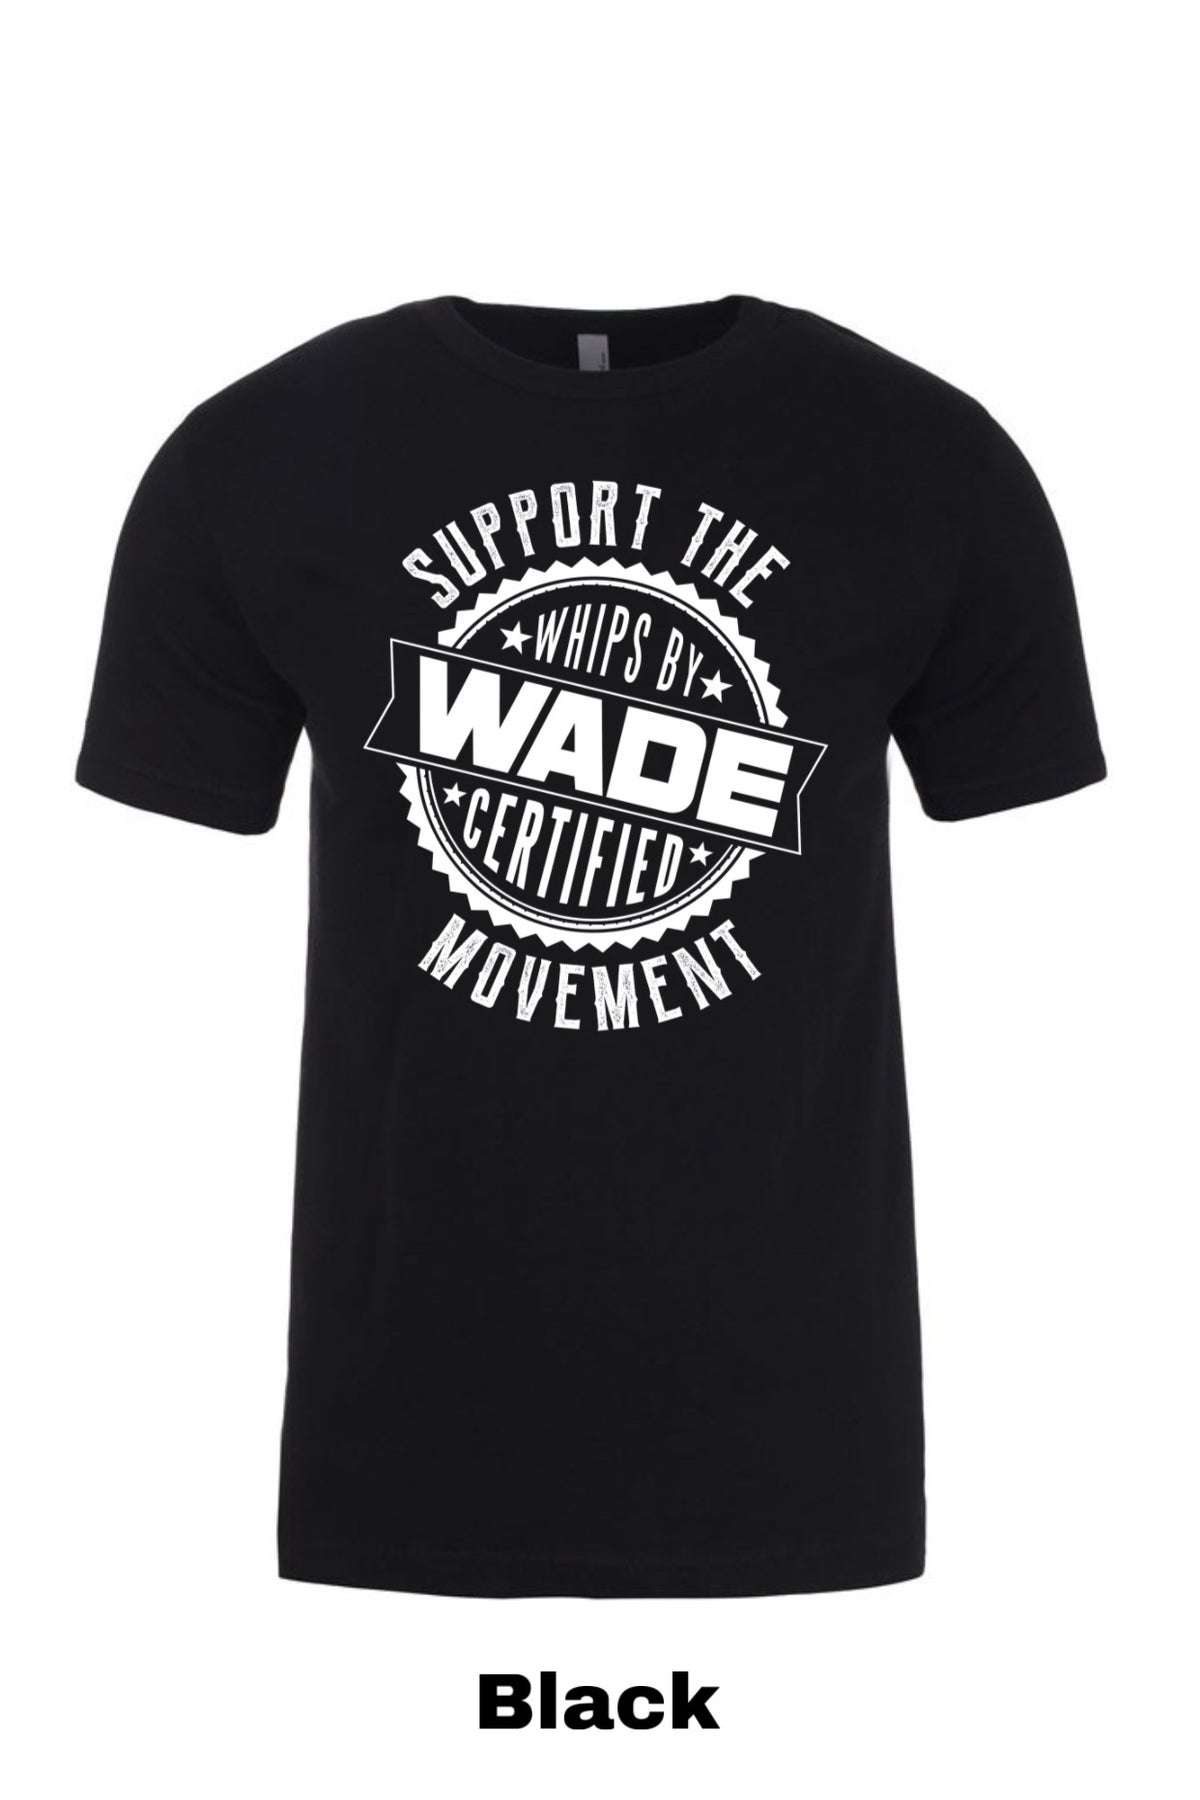 Image of Support The Movement 2020 * PRE ORDER *